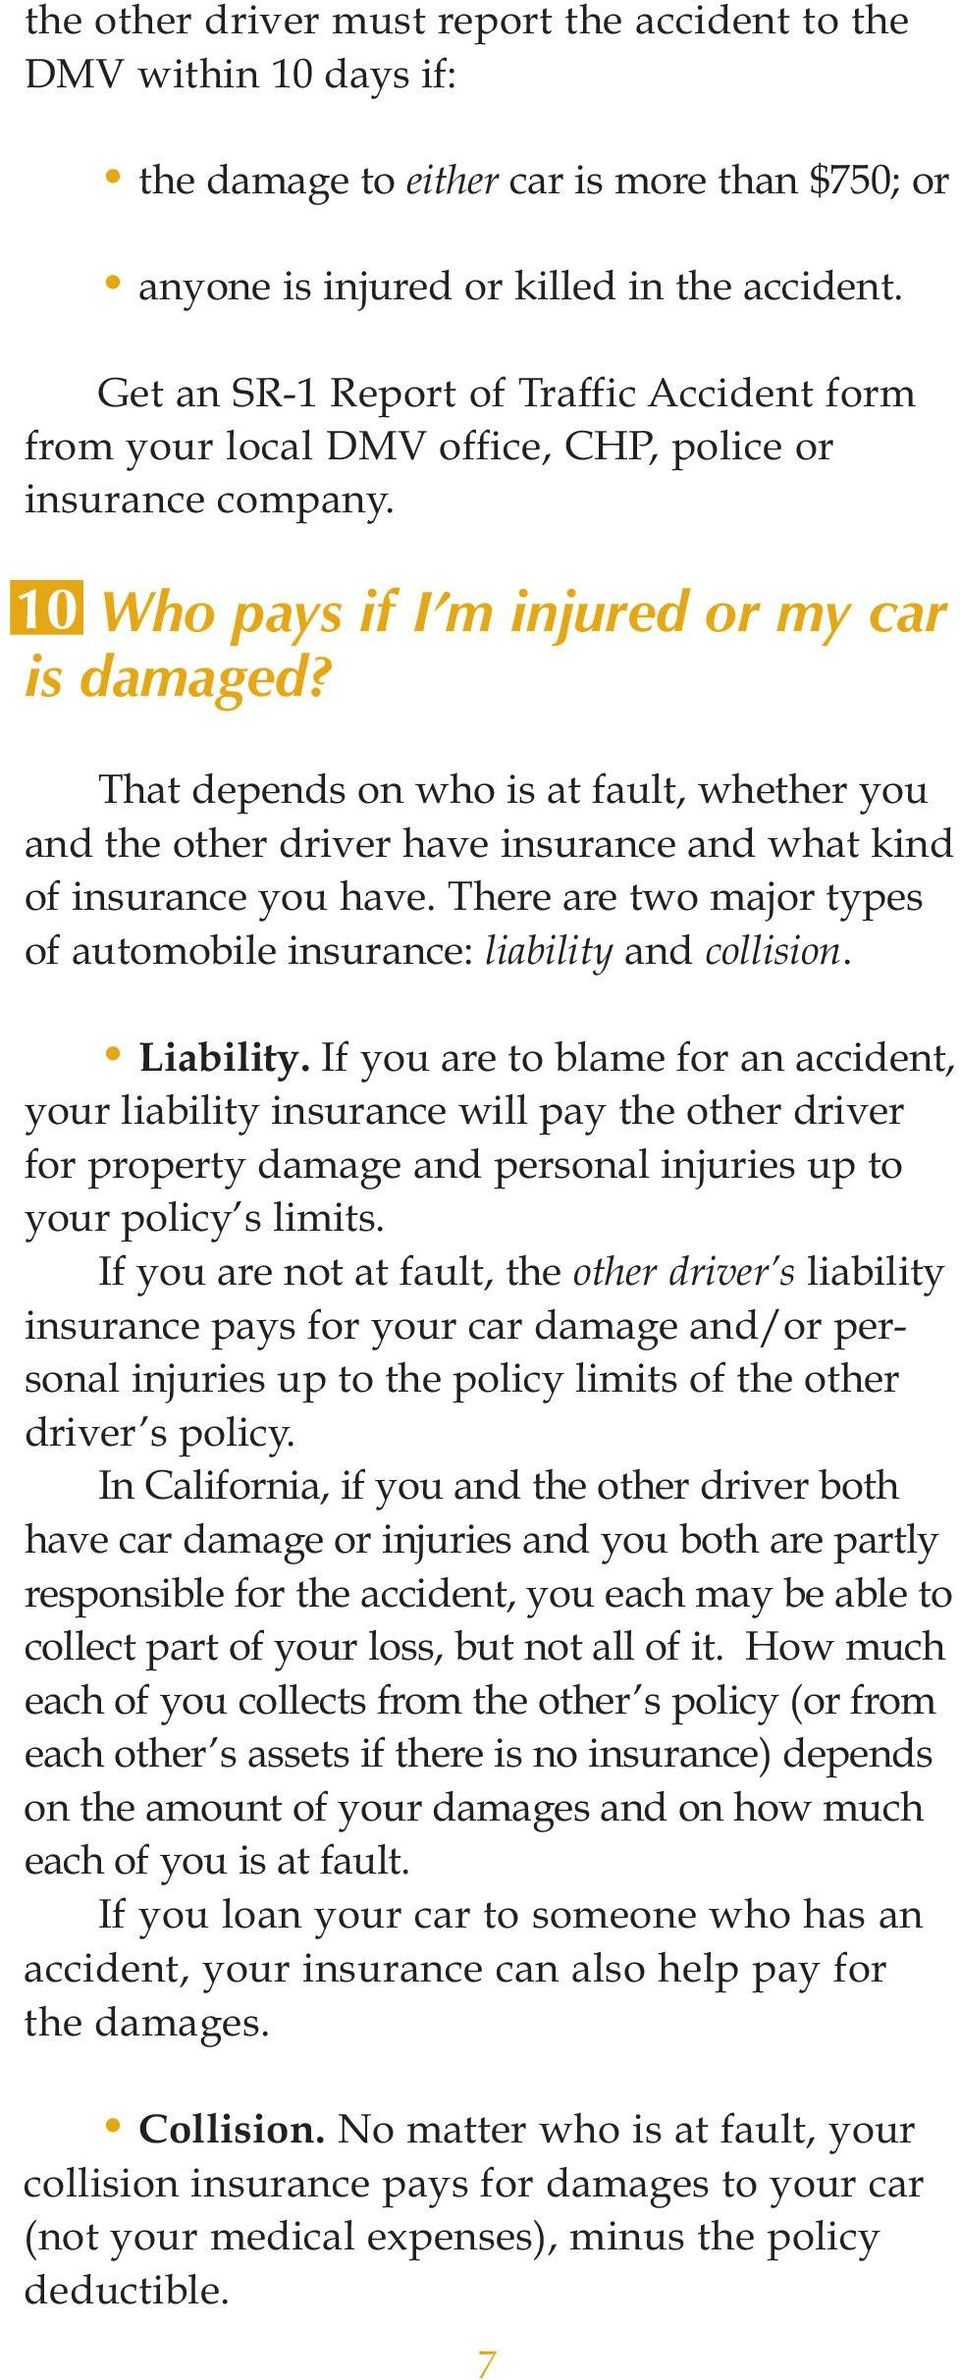 That depends on who is at fault, whether you and the other driver have insurance and what kind of insurance you have. There are two major types of automobile insurance: liability and collision.